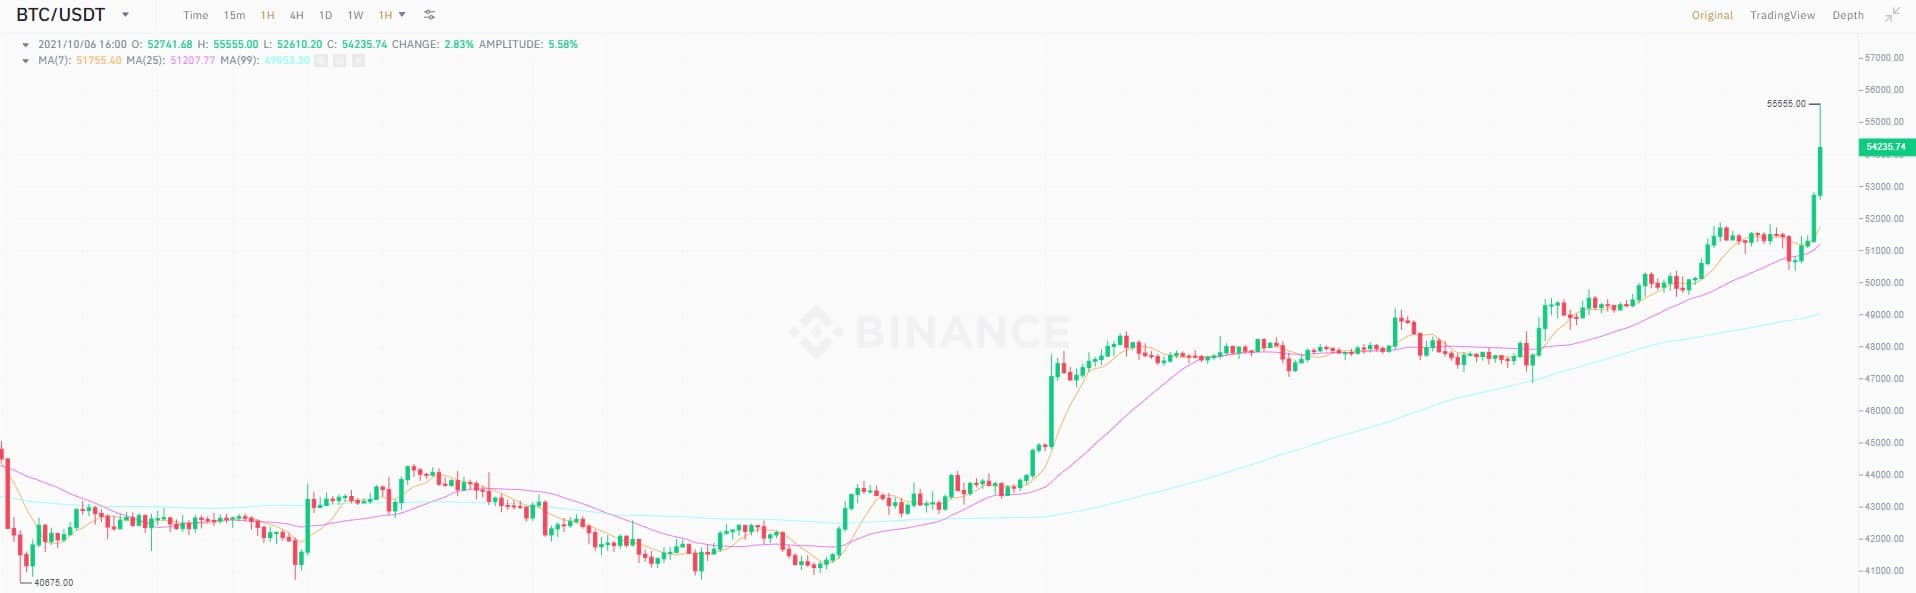 Bitcoin Price Soared Above $55K, Highest Since May 2021